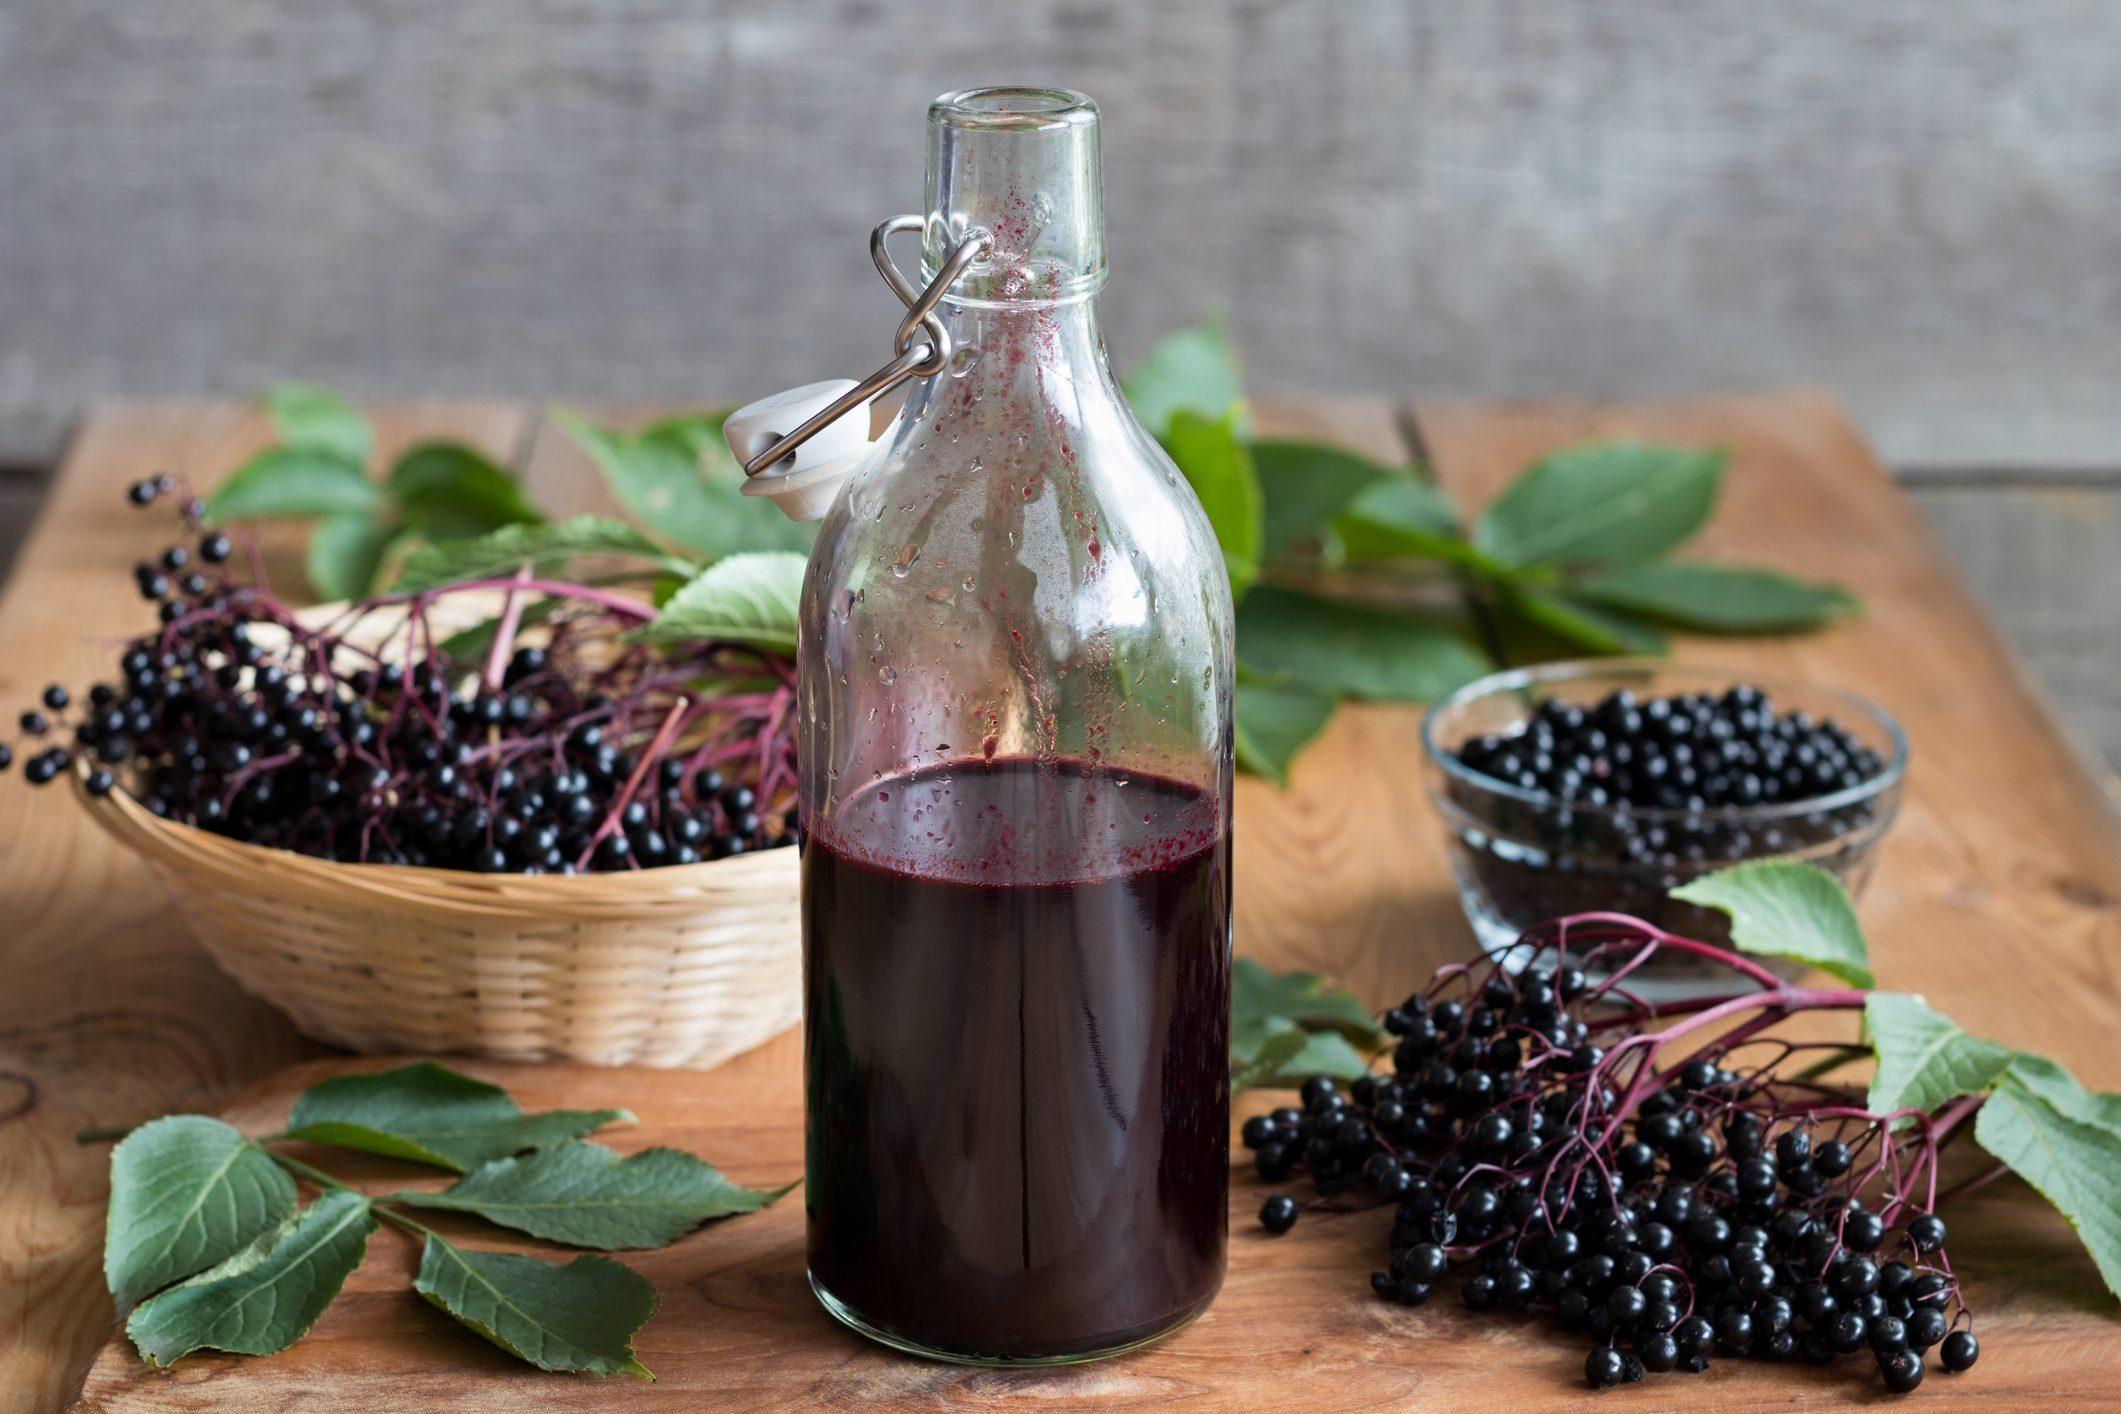 A bottle of elderberry syrup